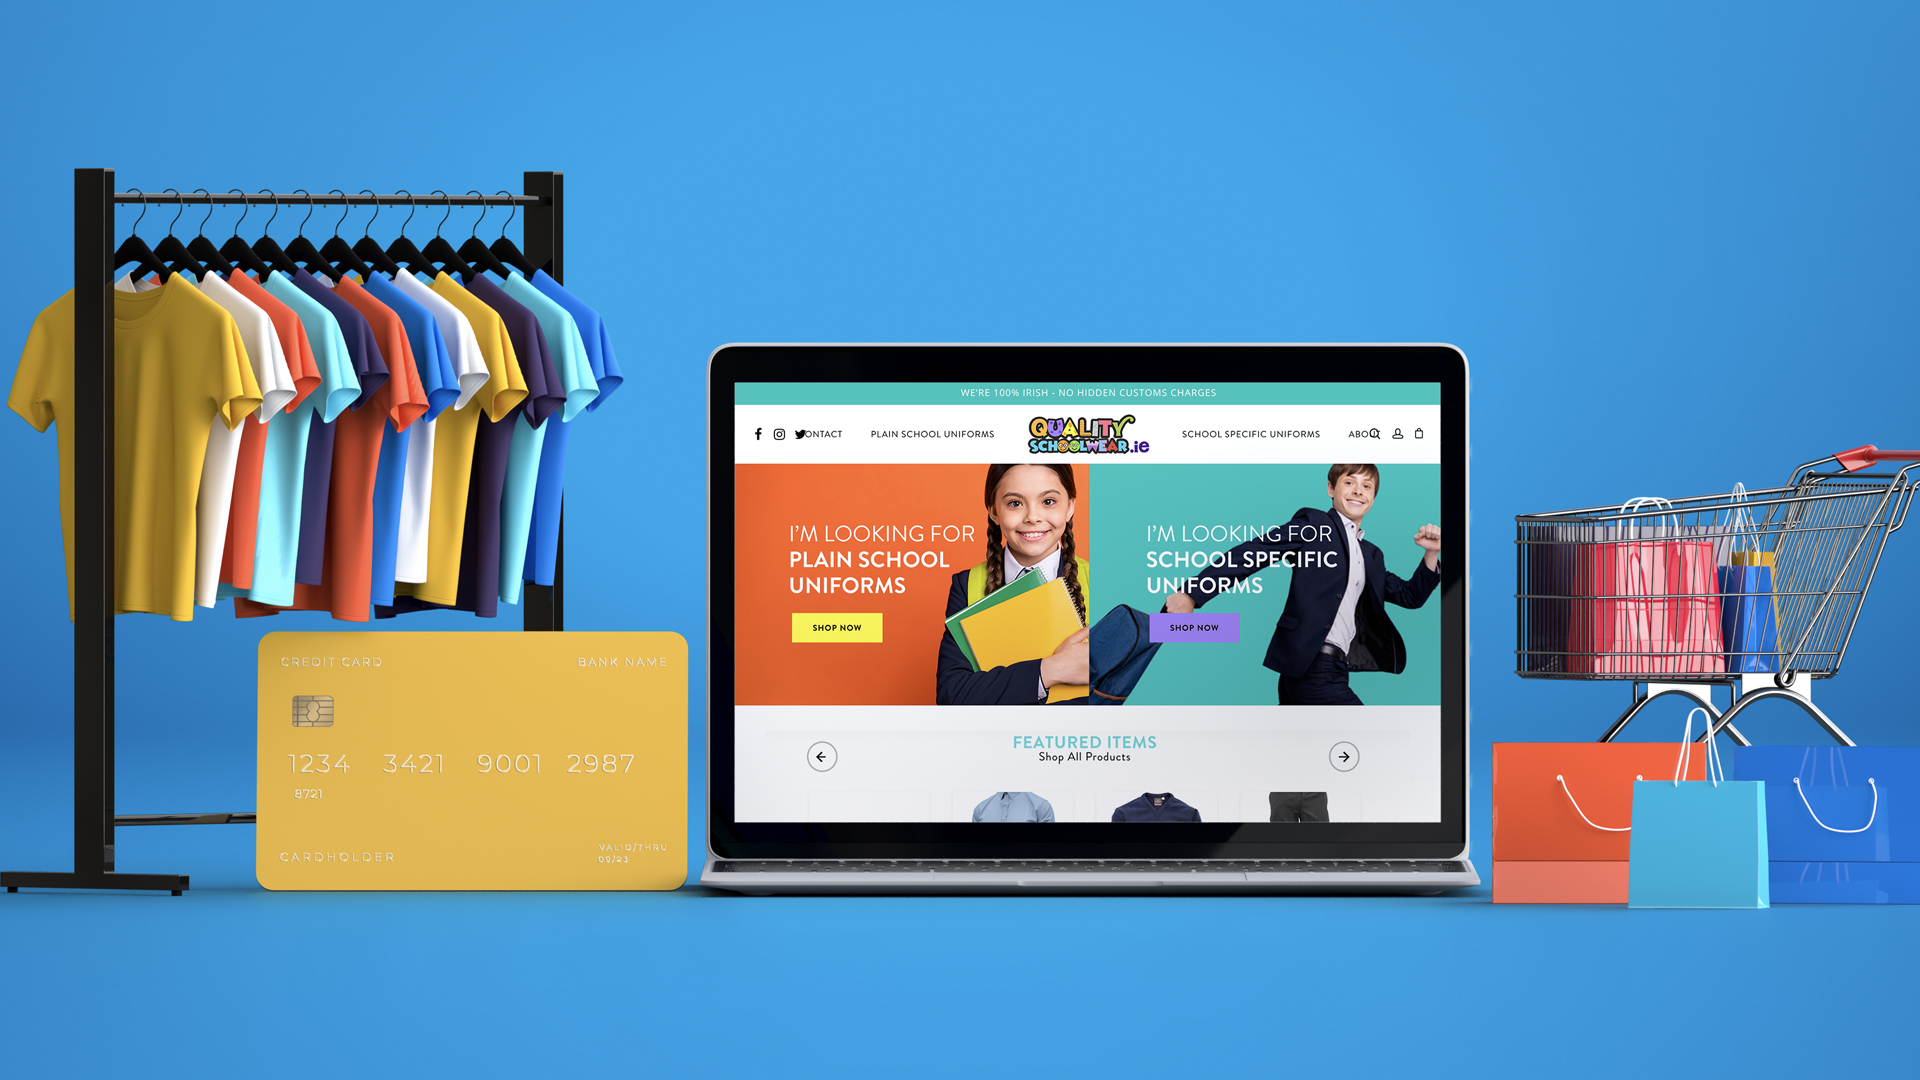 10 E-Commerce Conversion Tactics to Grow Your Store